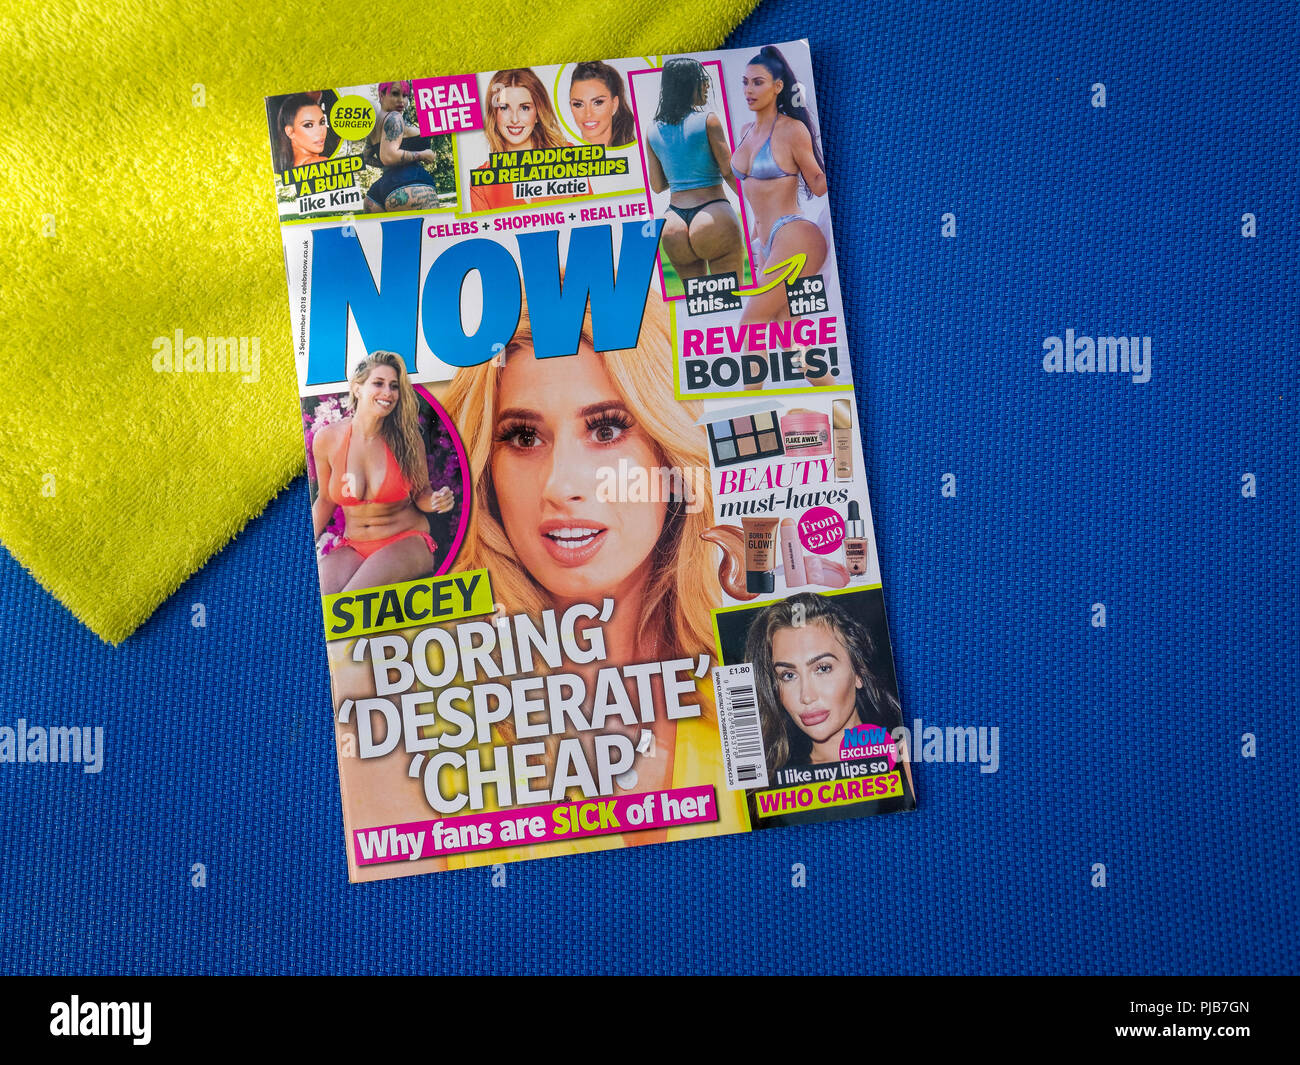 Copy of Now Magazine on a Sunbed, Now magazine is a weekly celebrity news round-up aimed at women readers, The magazine was launched in 1996. Stock Photo